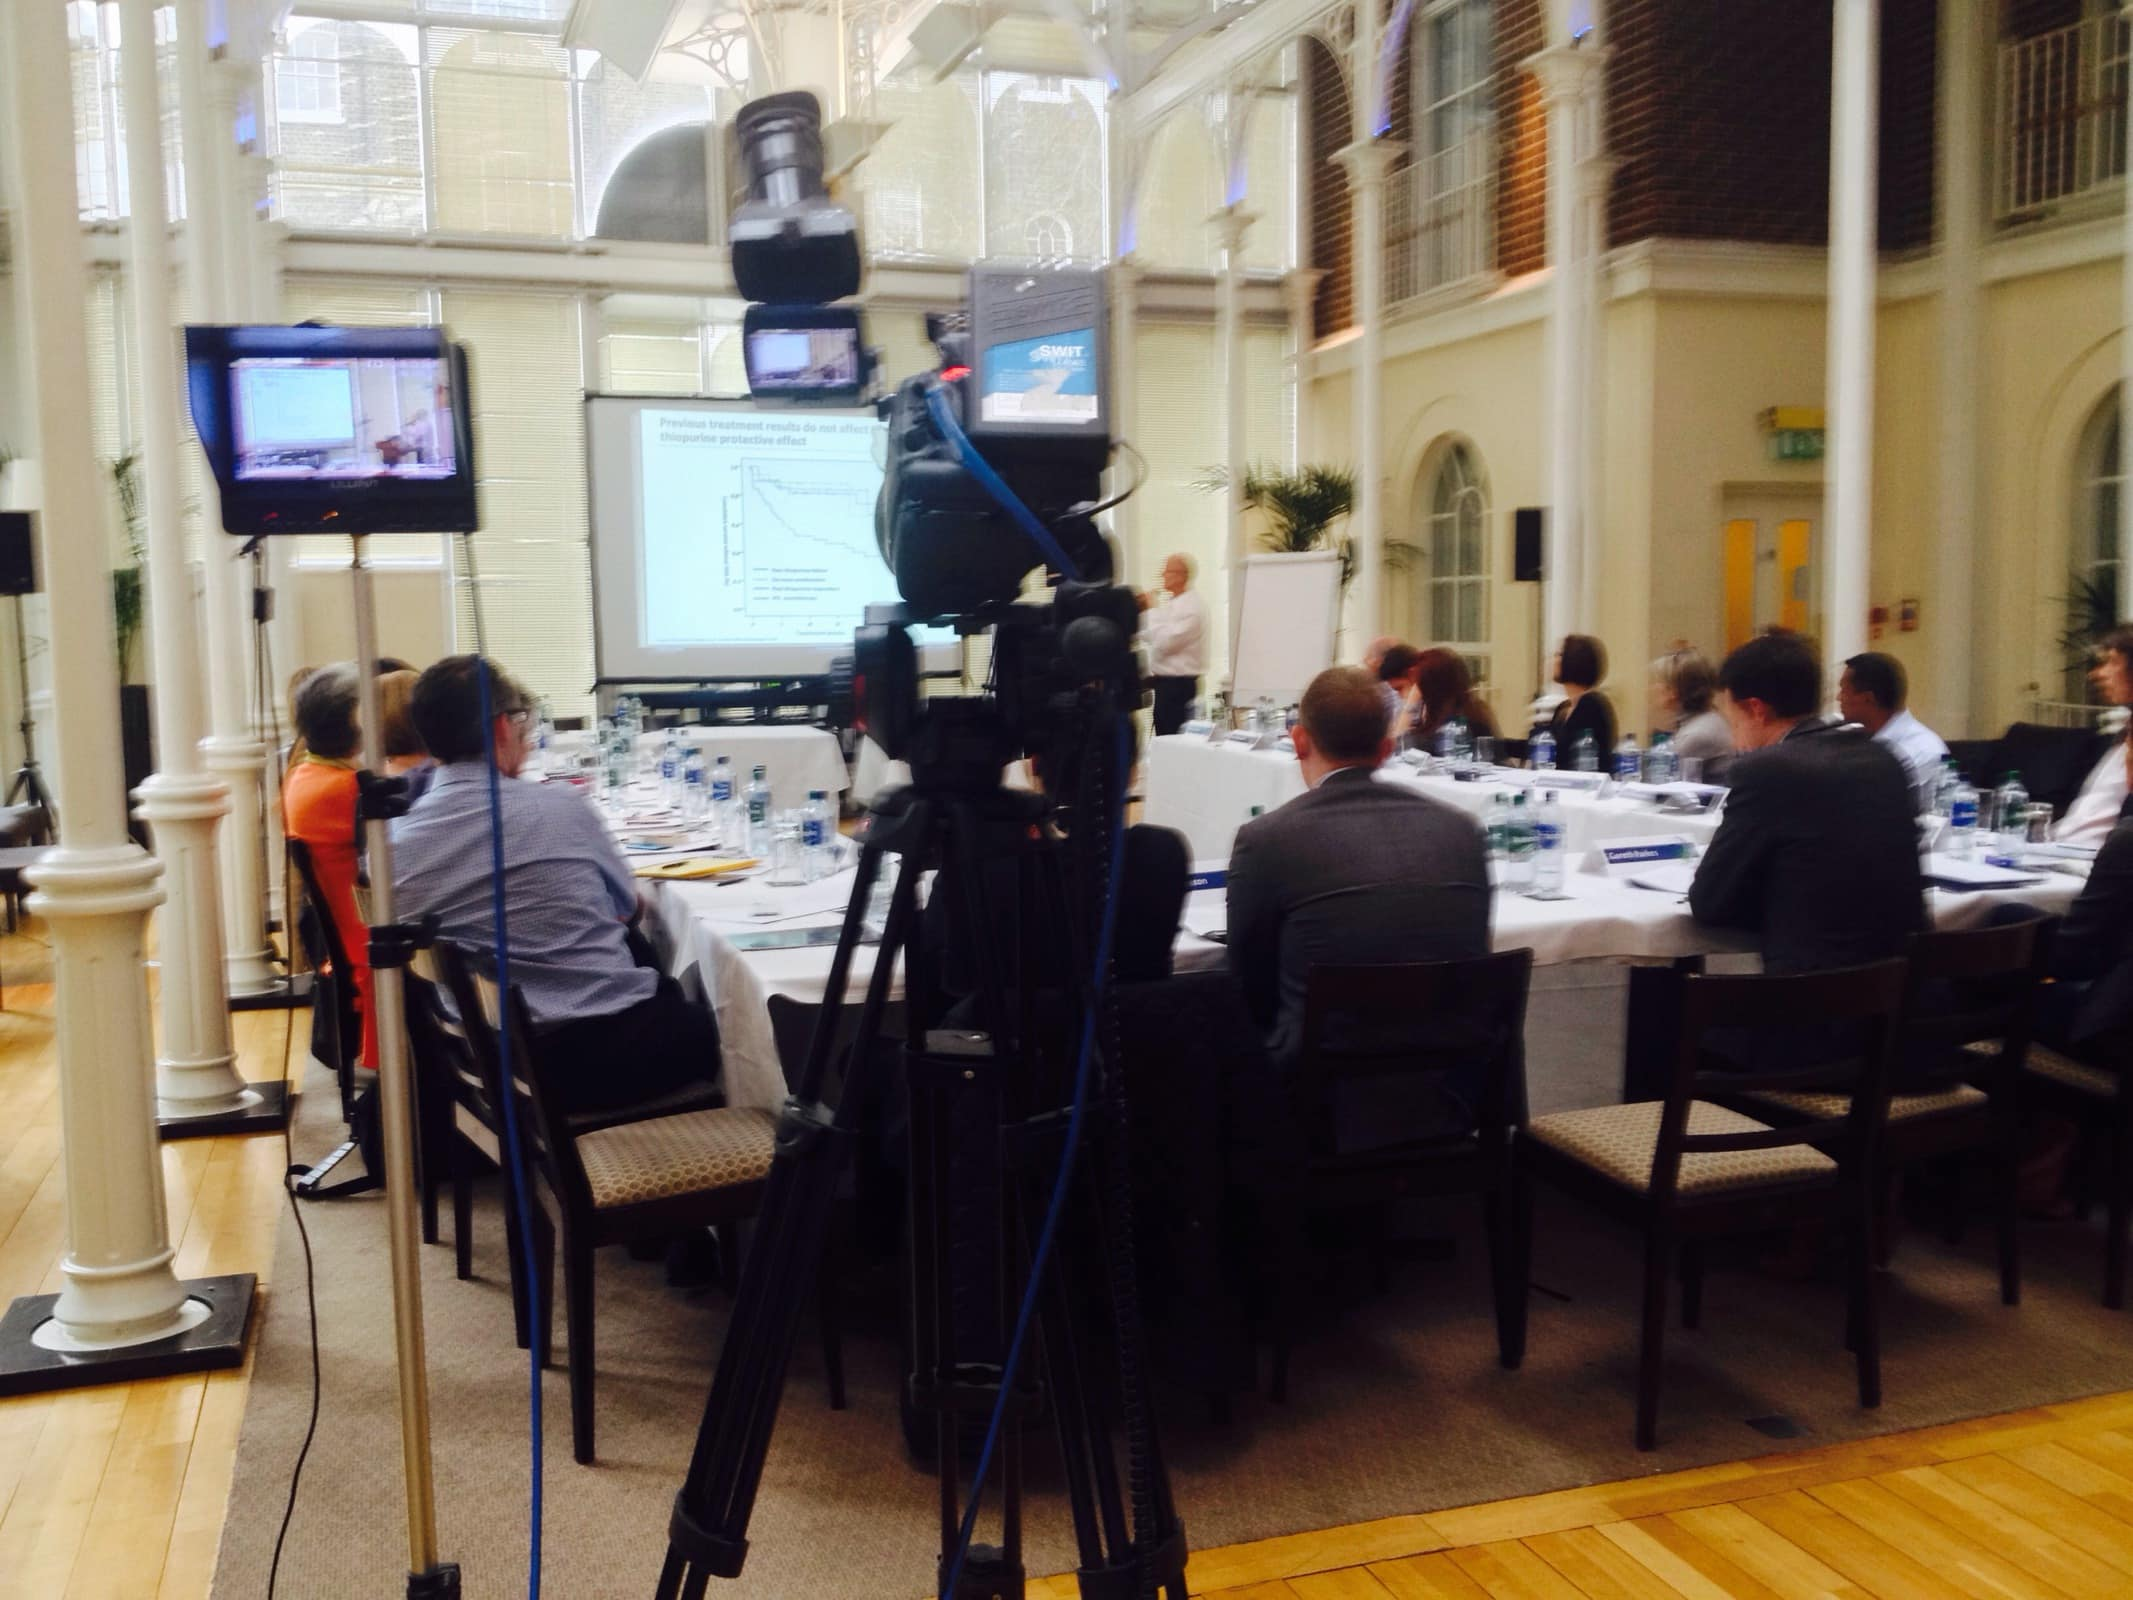 Filming abbvie medical conference london